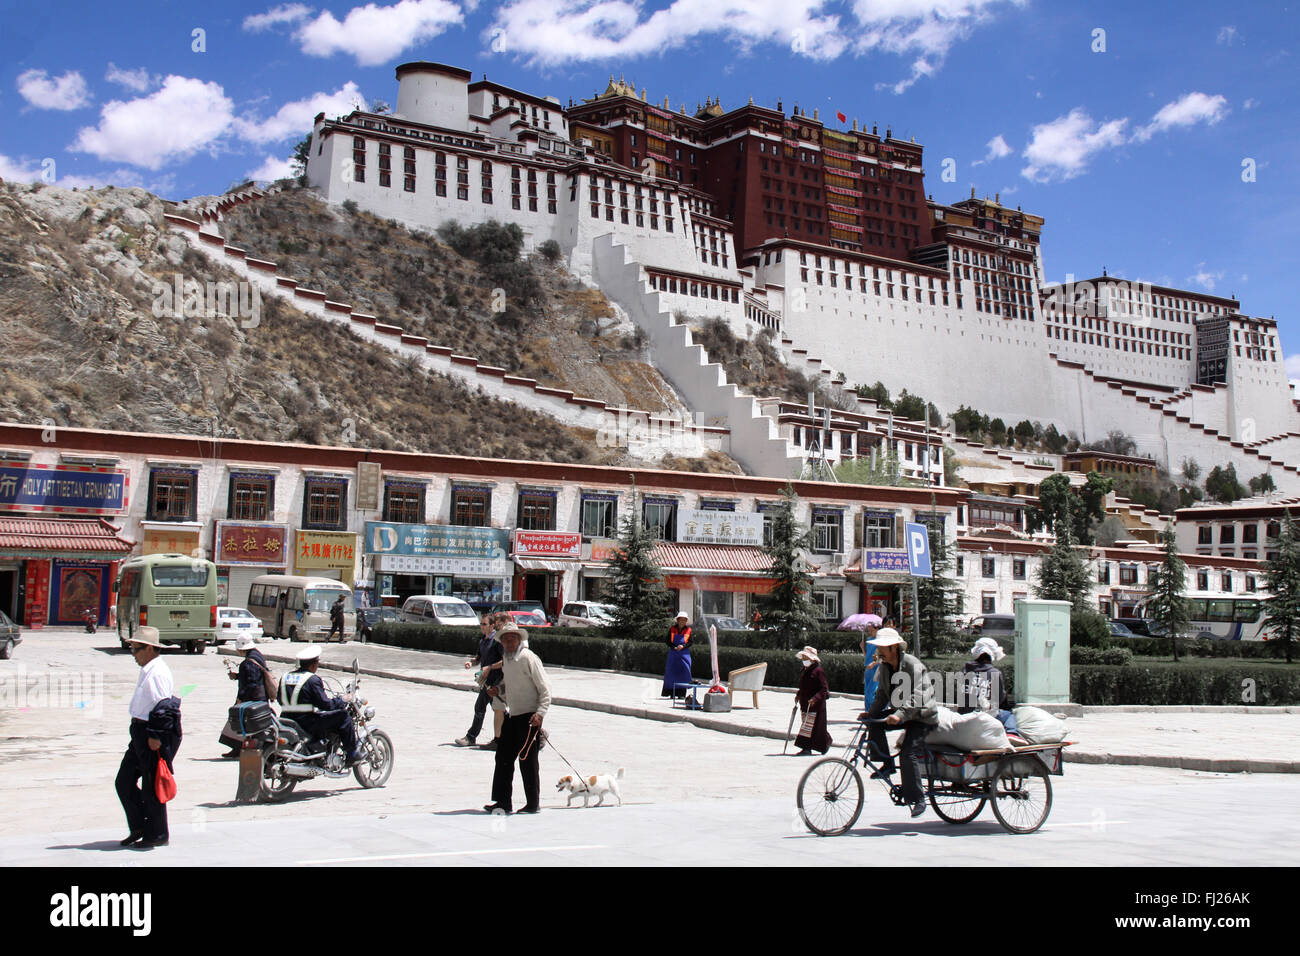 The legendary Potala palace  in Lhasa, Tibet - Stock Image